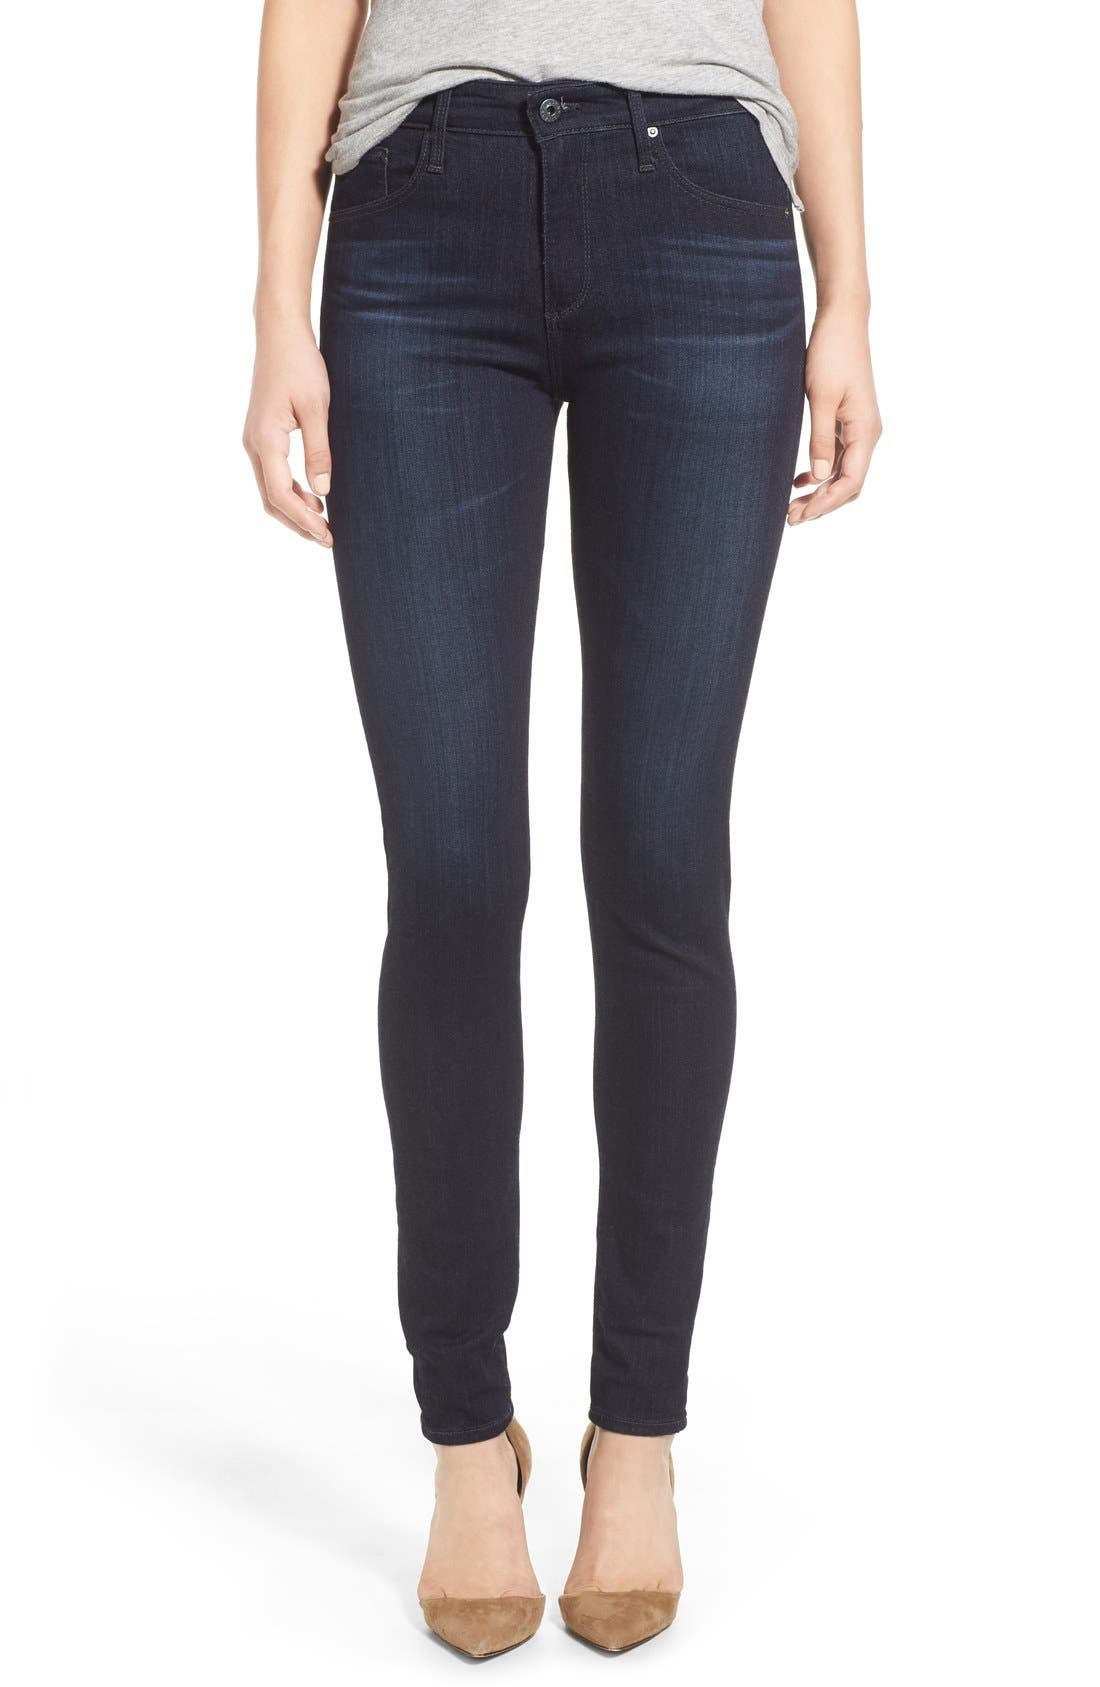 High waisted jeans at h&m